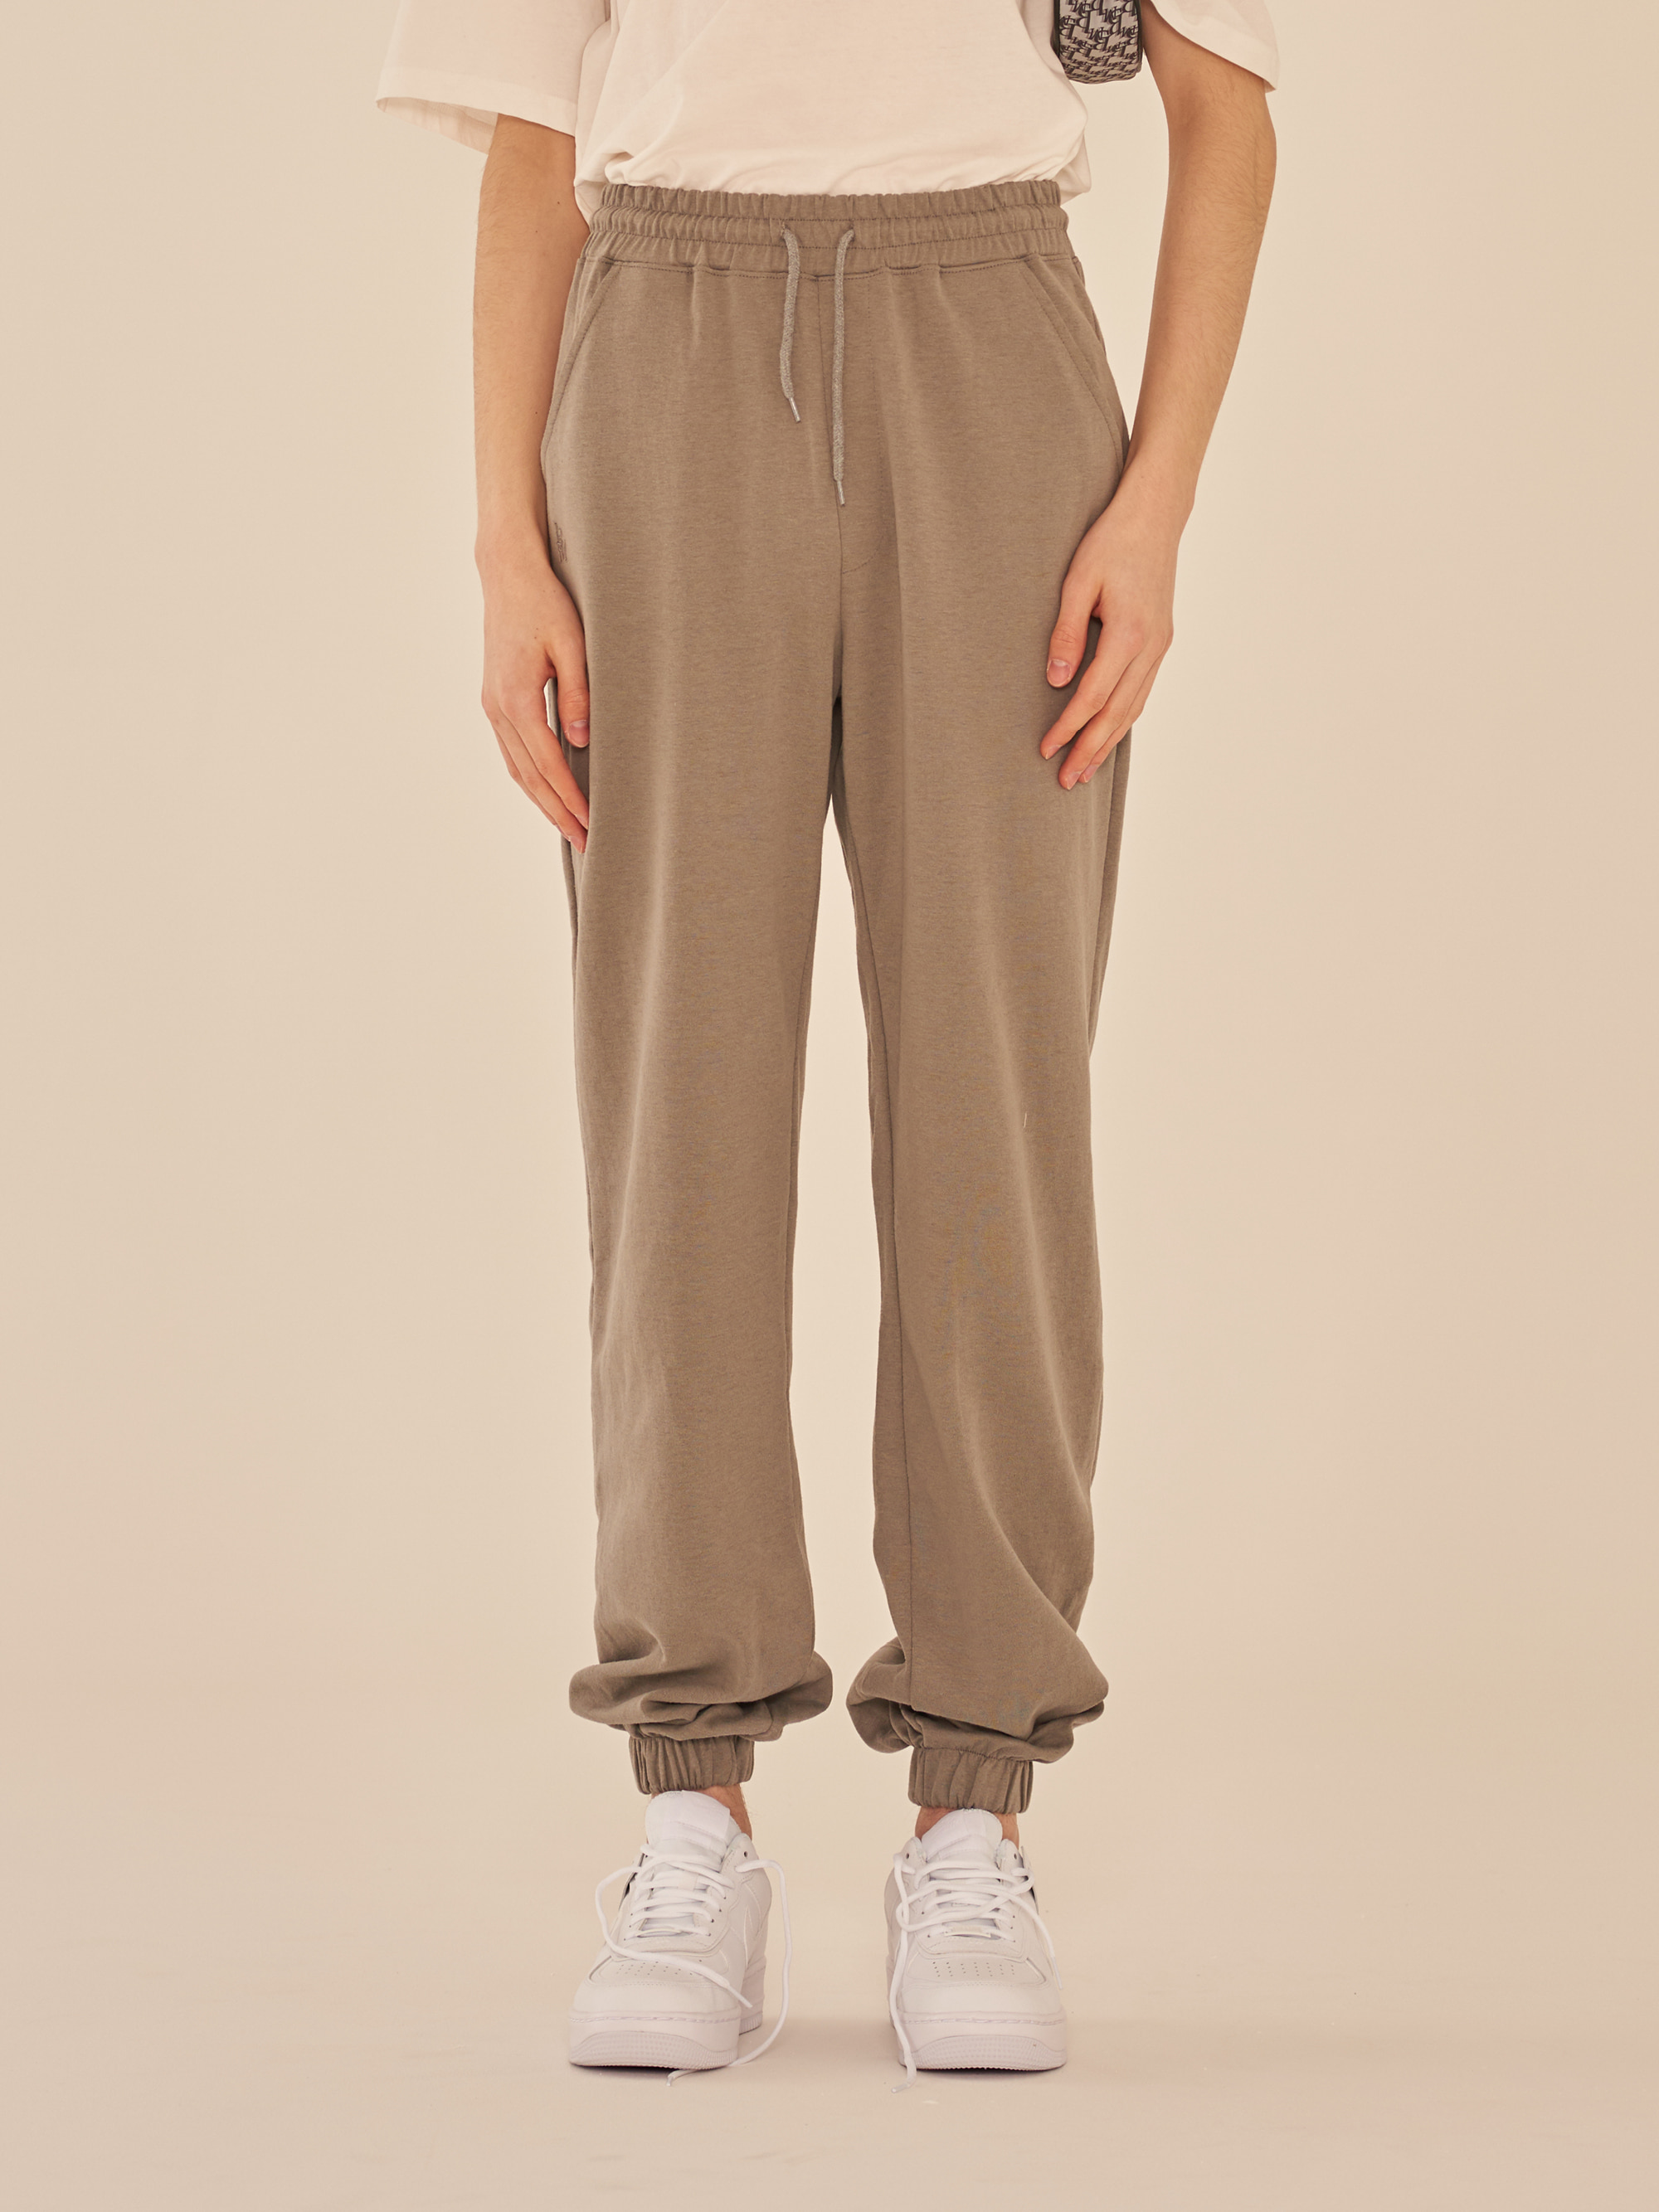 DRAPE JOGGER PANTS (GRAY)